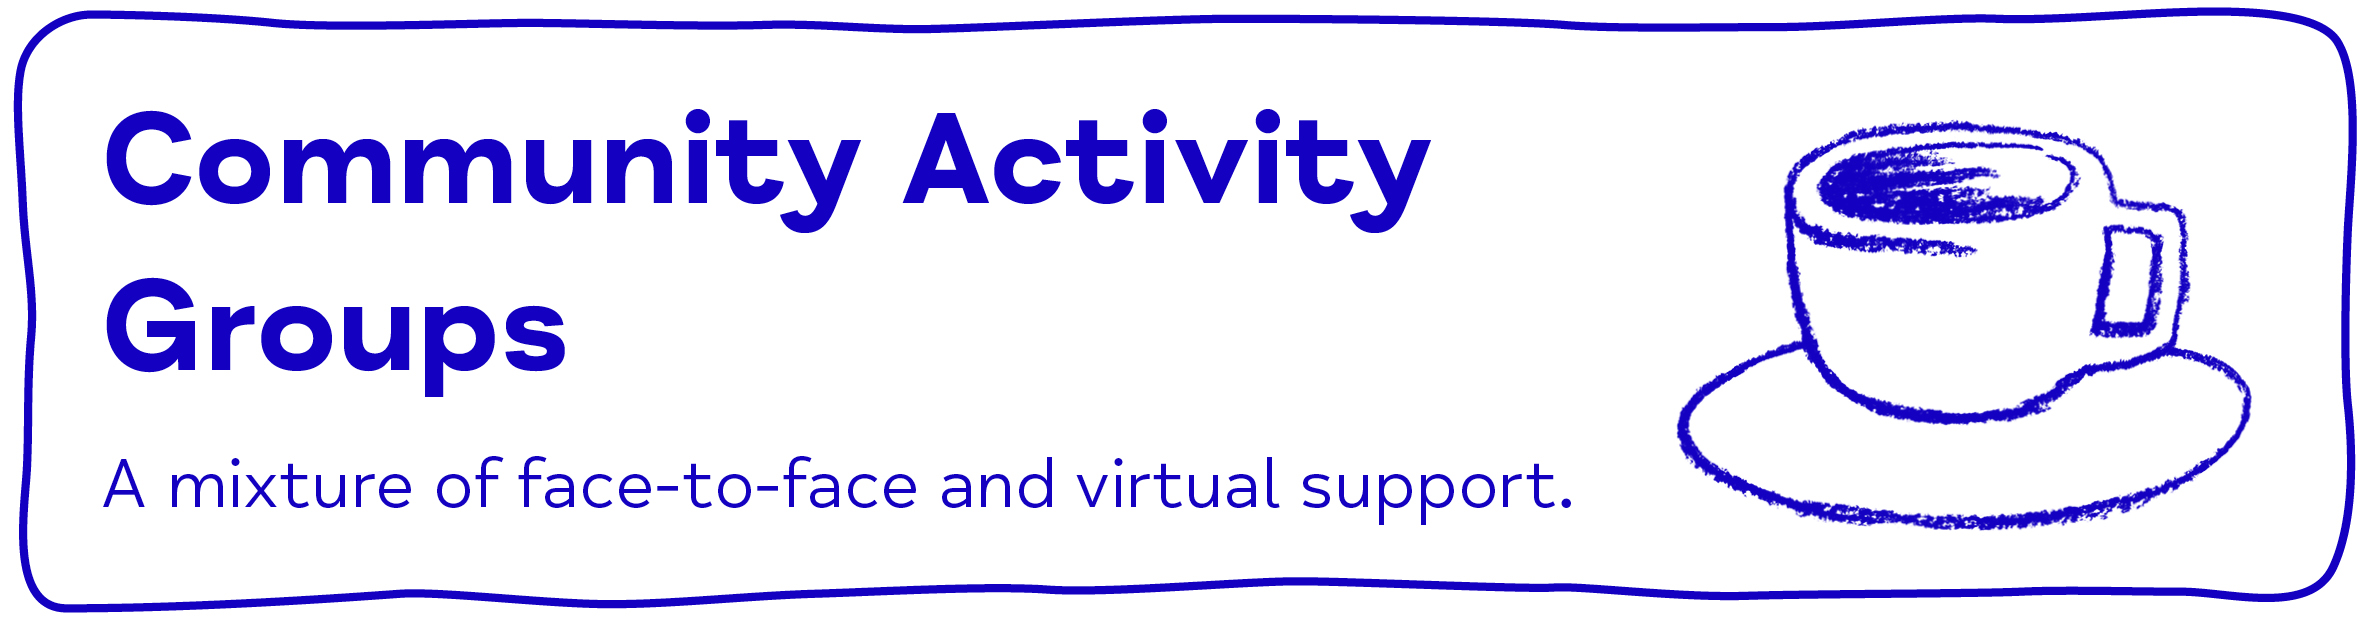 Community Activity Groups A mixture of face-to-face and virtual support.